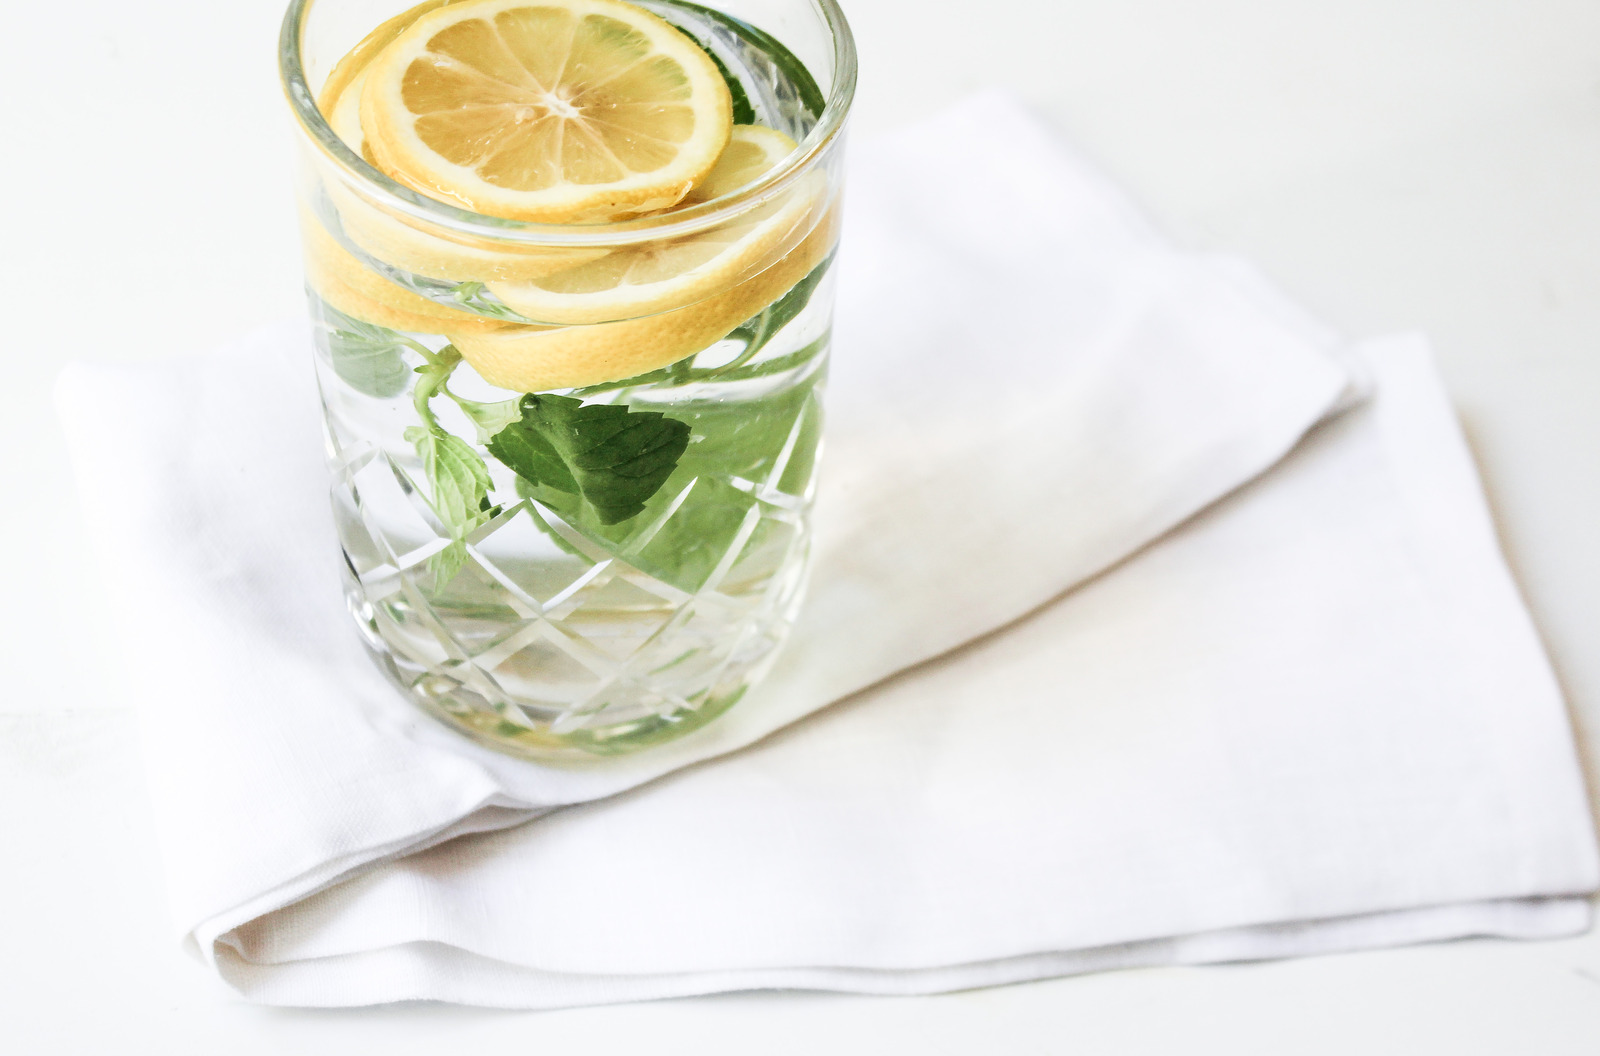 lemon and mint in a glass blog.jpg